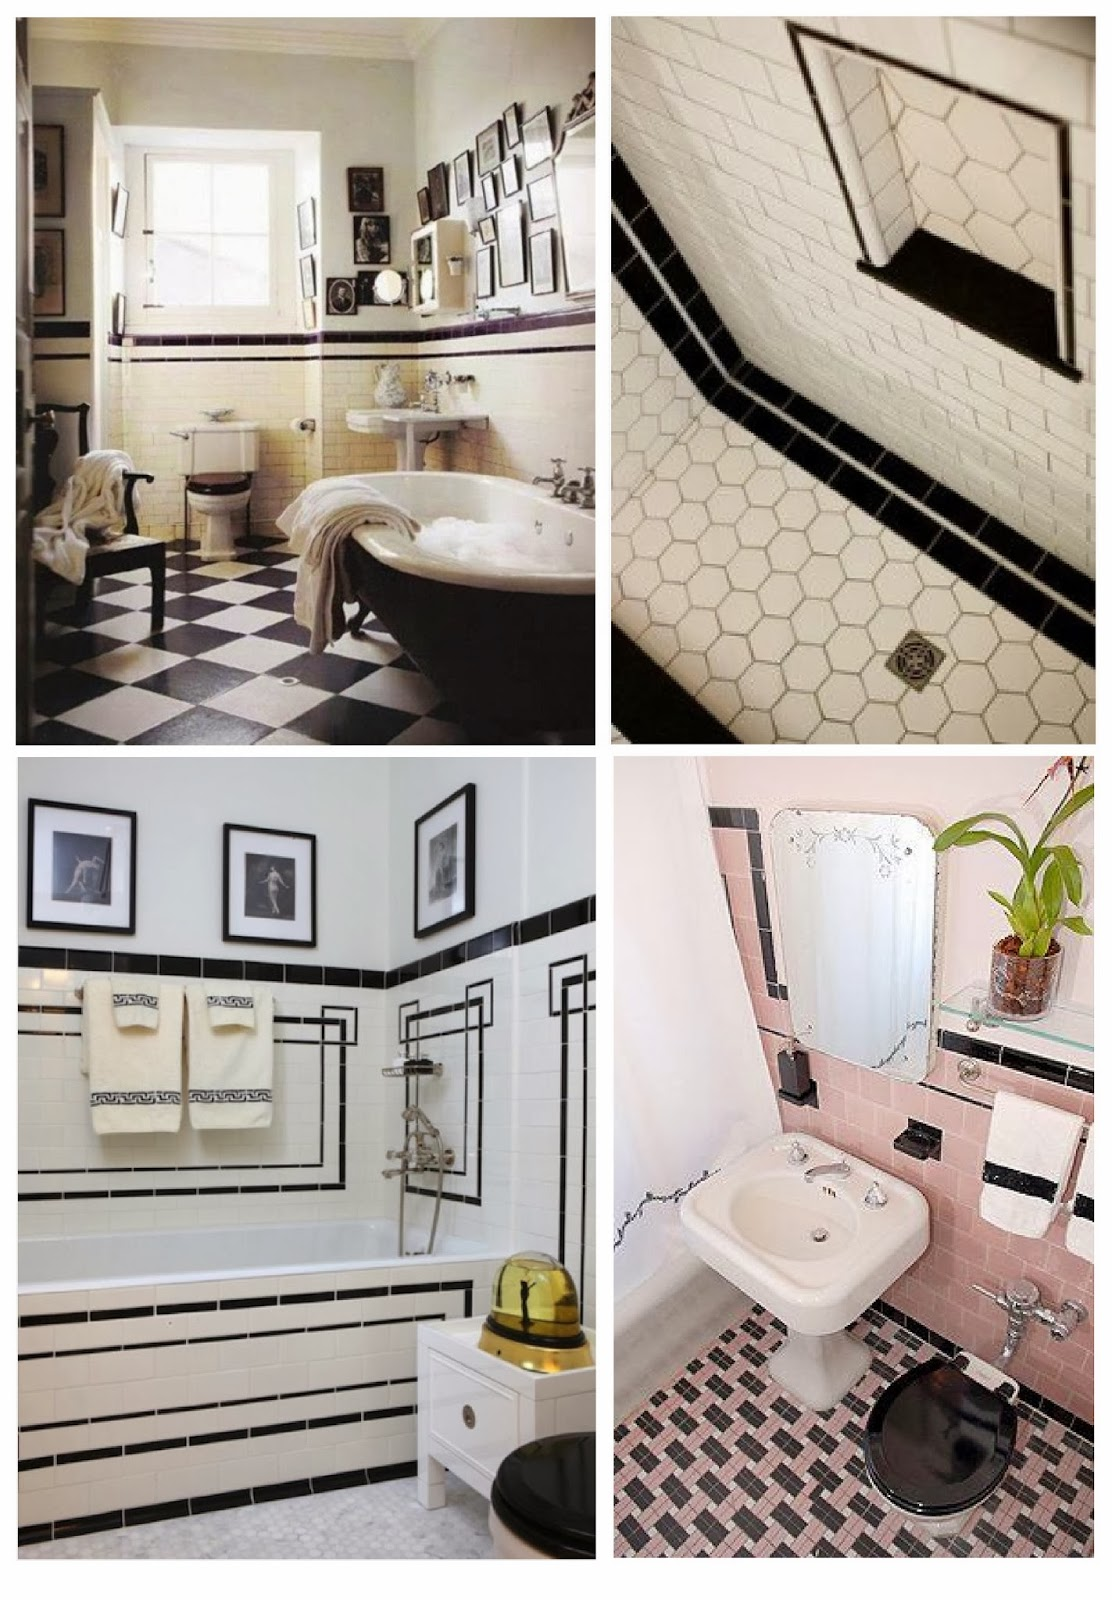 Deco bathrooms 2